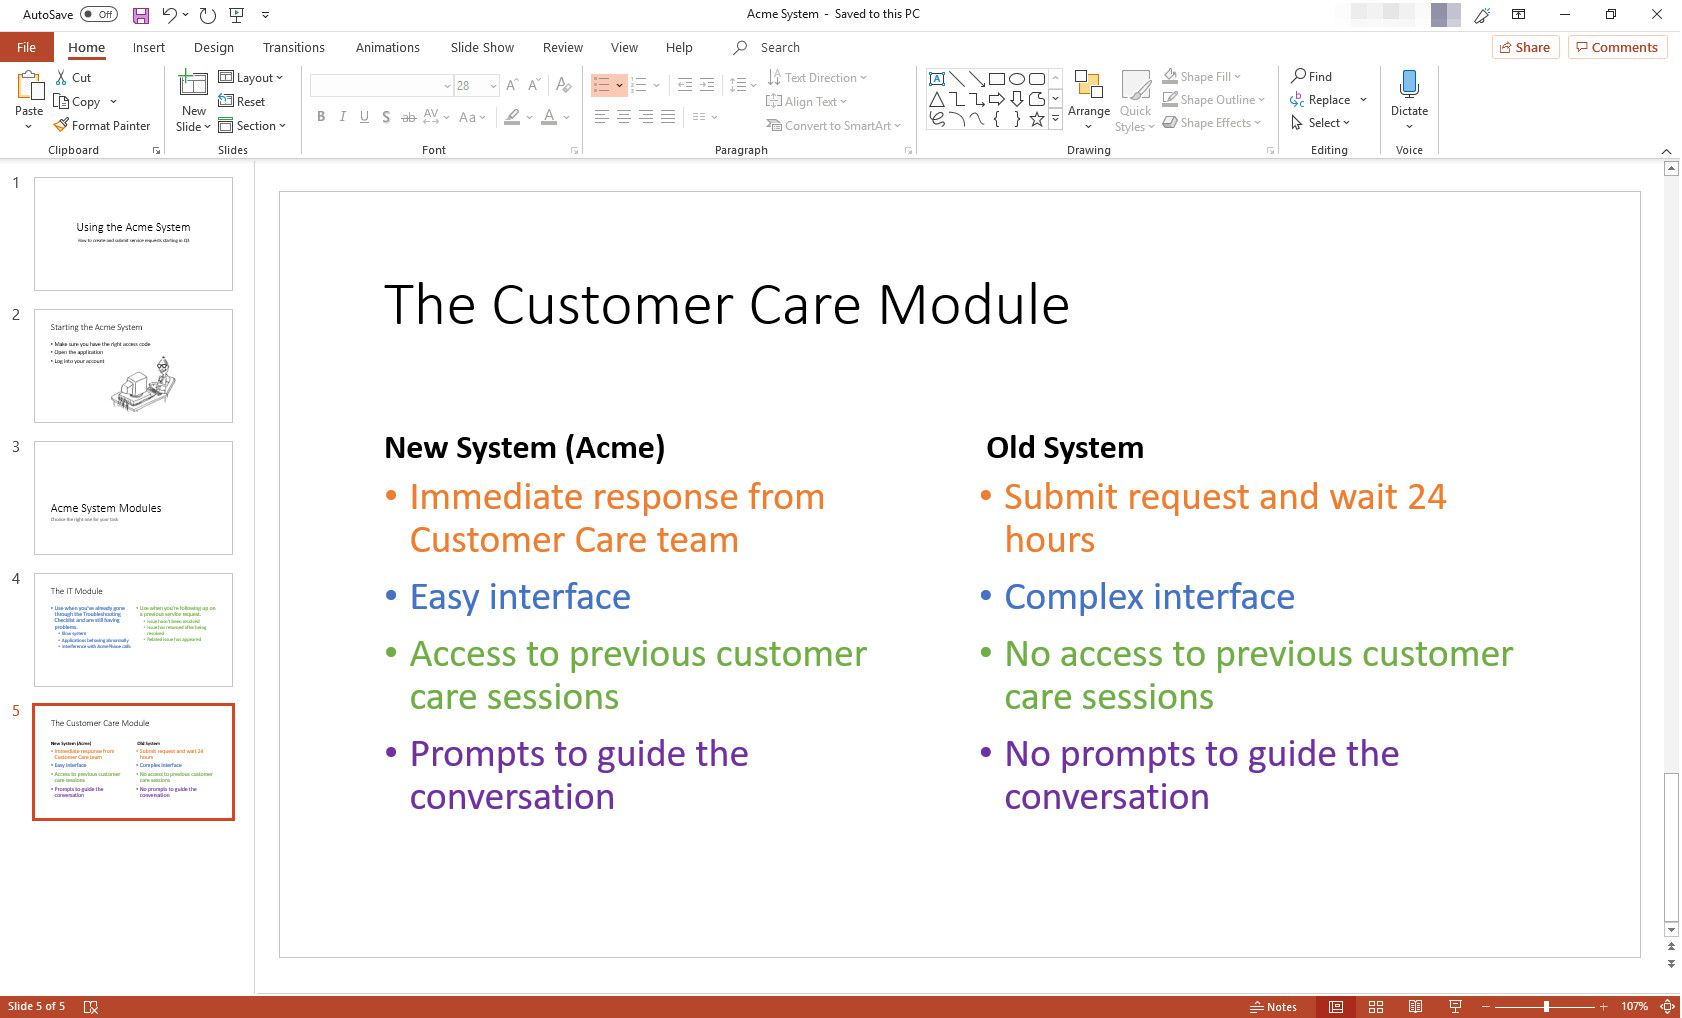 MS PowerPoint presentation with Comparison slide layout displayed